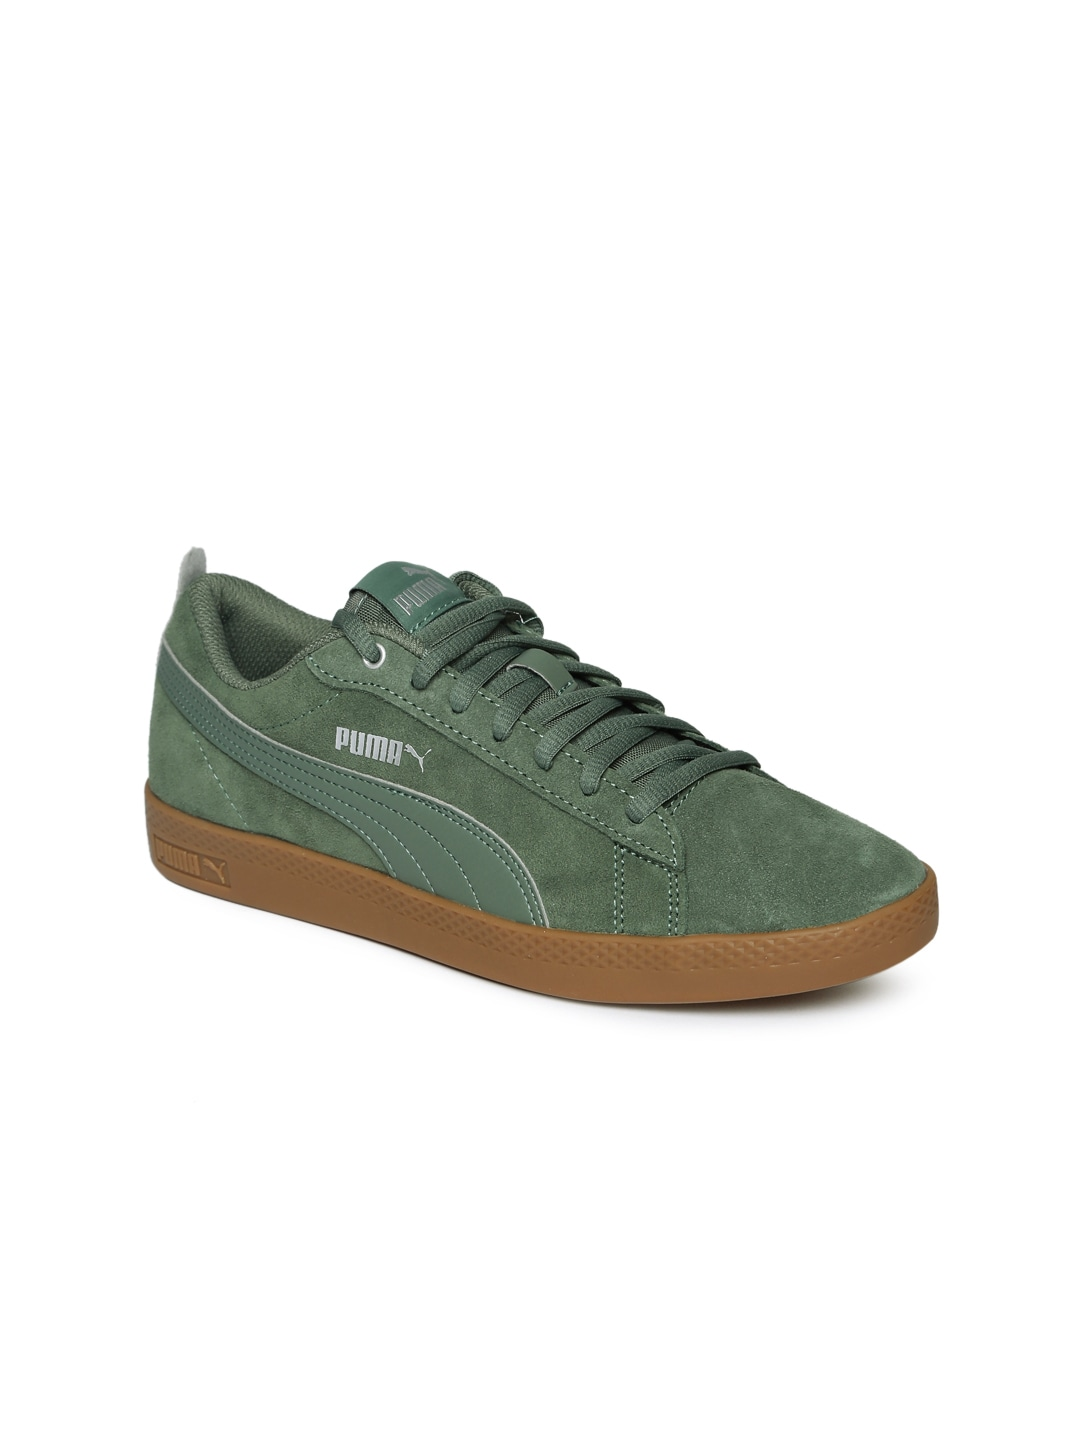 Puma Footwear - Buy Puma Footwear Online in India a0d1b6131